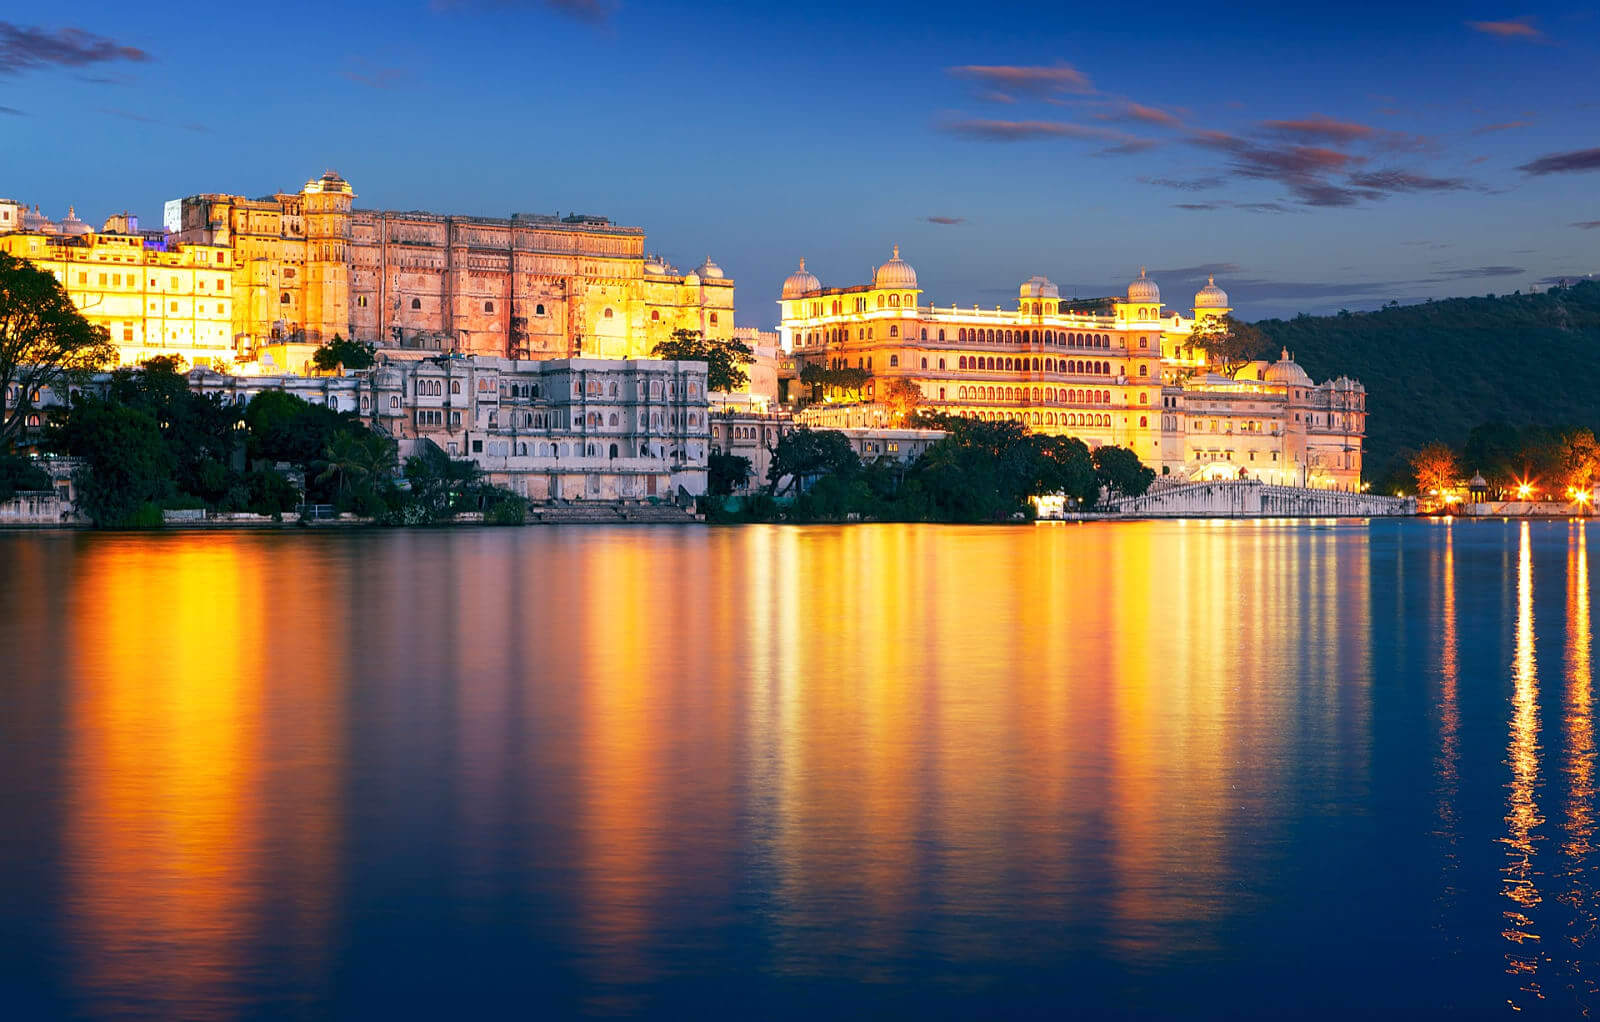 Udaipur among the World's Top 10 most beautiful cities!